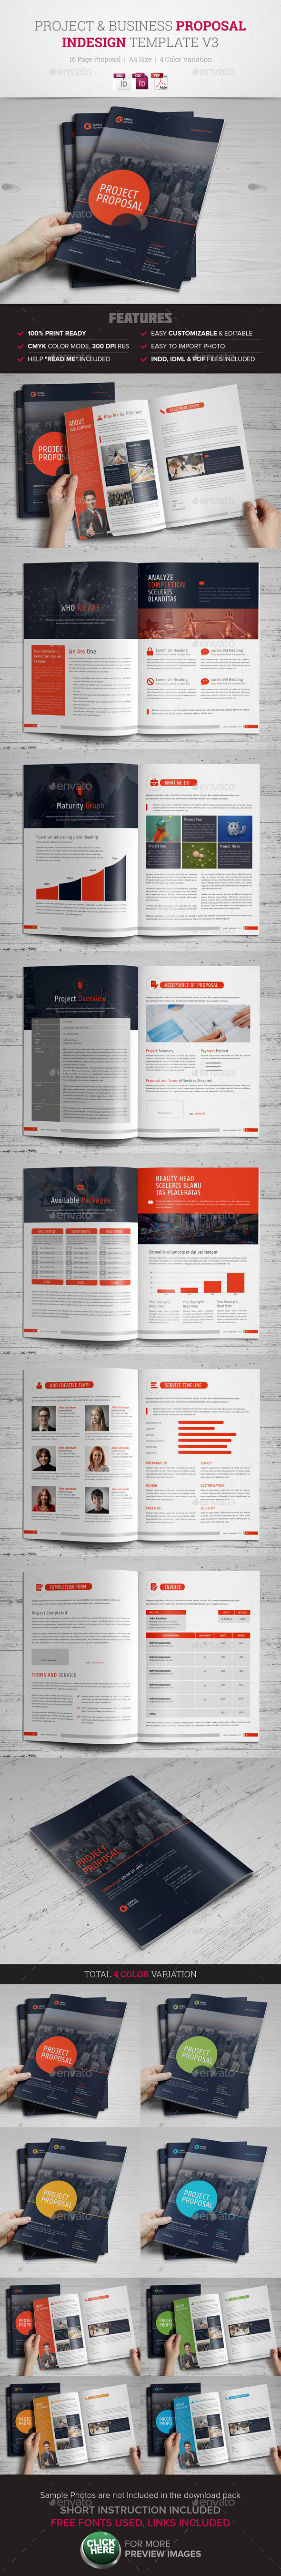 Project business proposal v3 by jbn comilla graphicriver project business proposal v3 proposals invoices stationery accmission Image collections